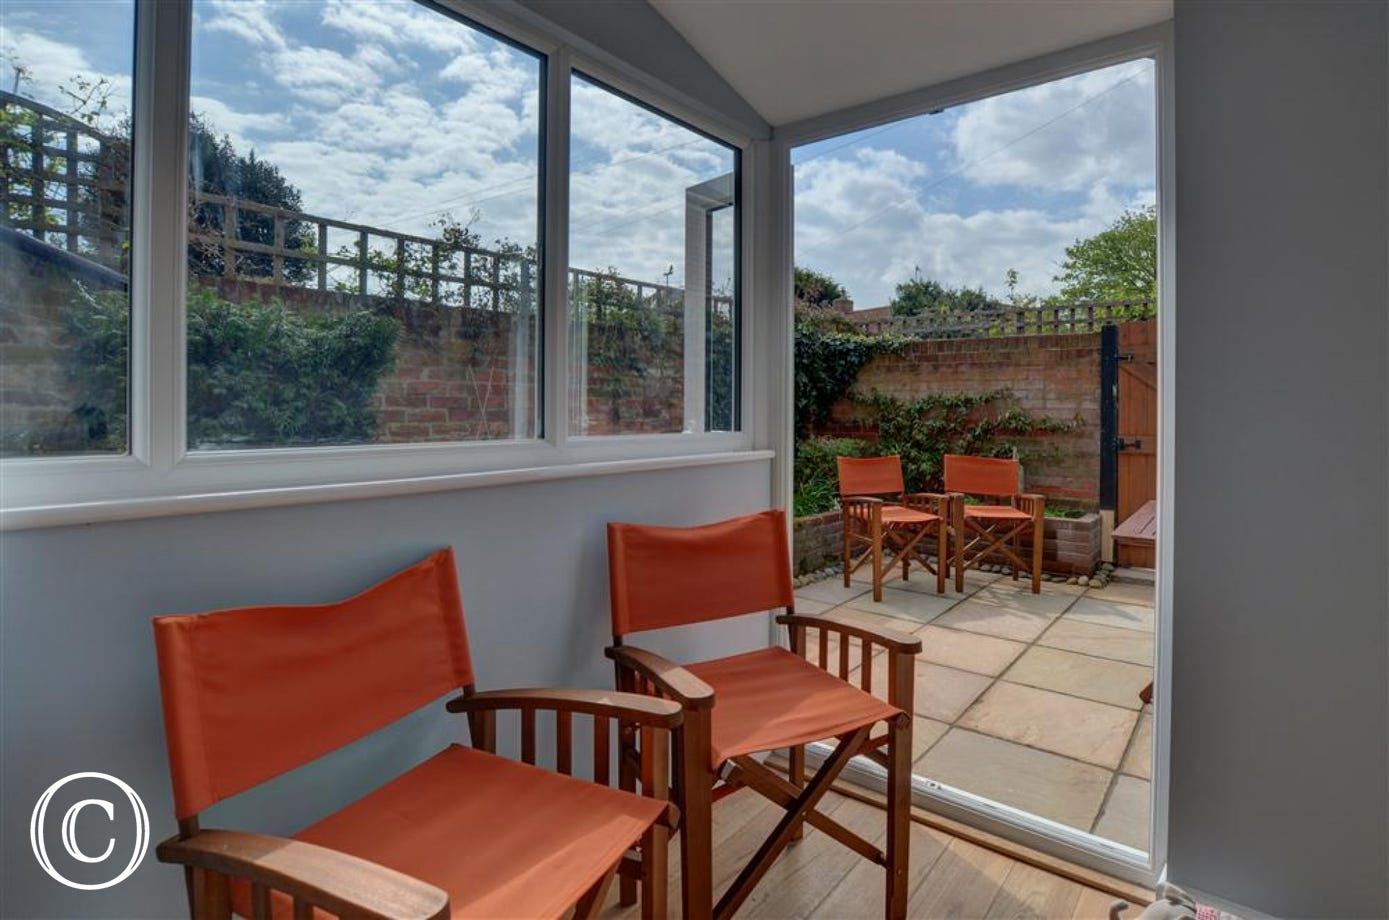 Enjoy sitting in this garden room on these orange director chairs and enjoying the warmth of the room of the view into the pretty courtyard garden.